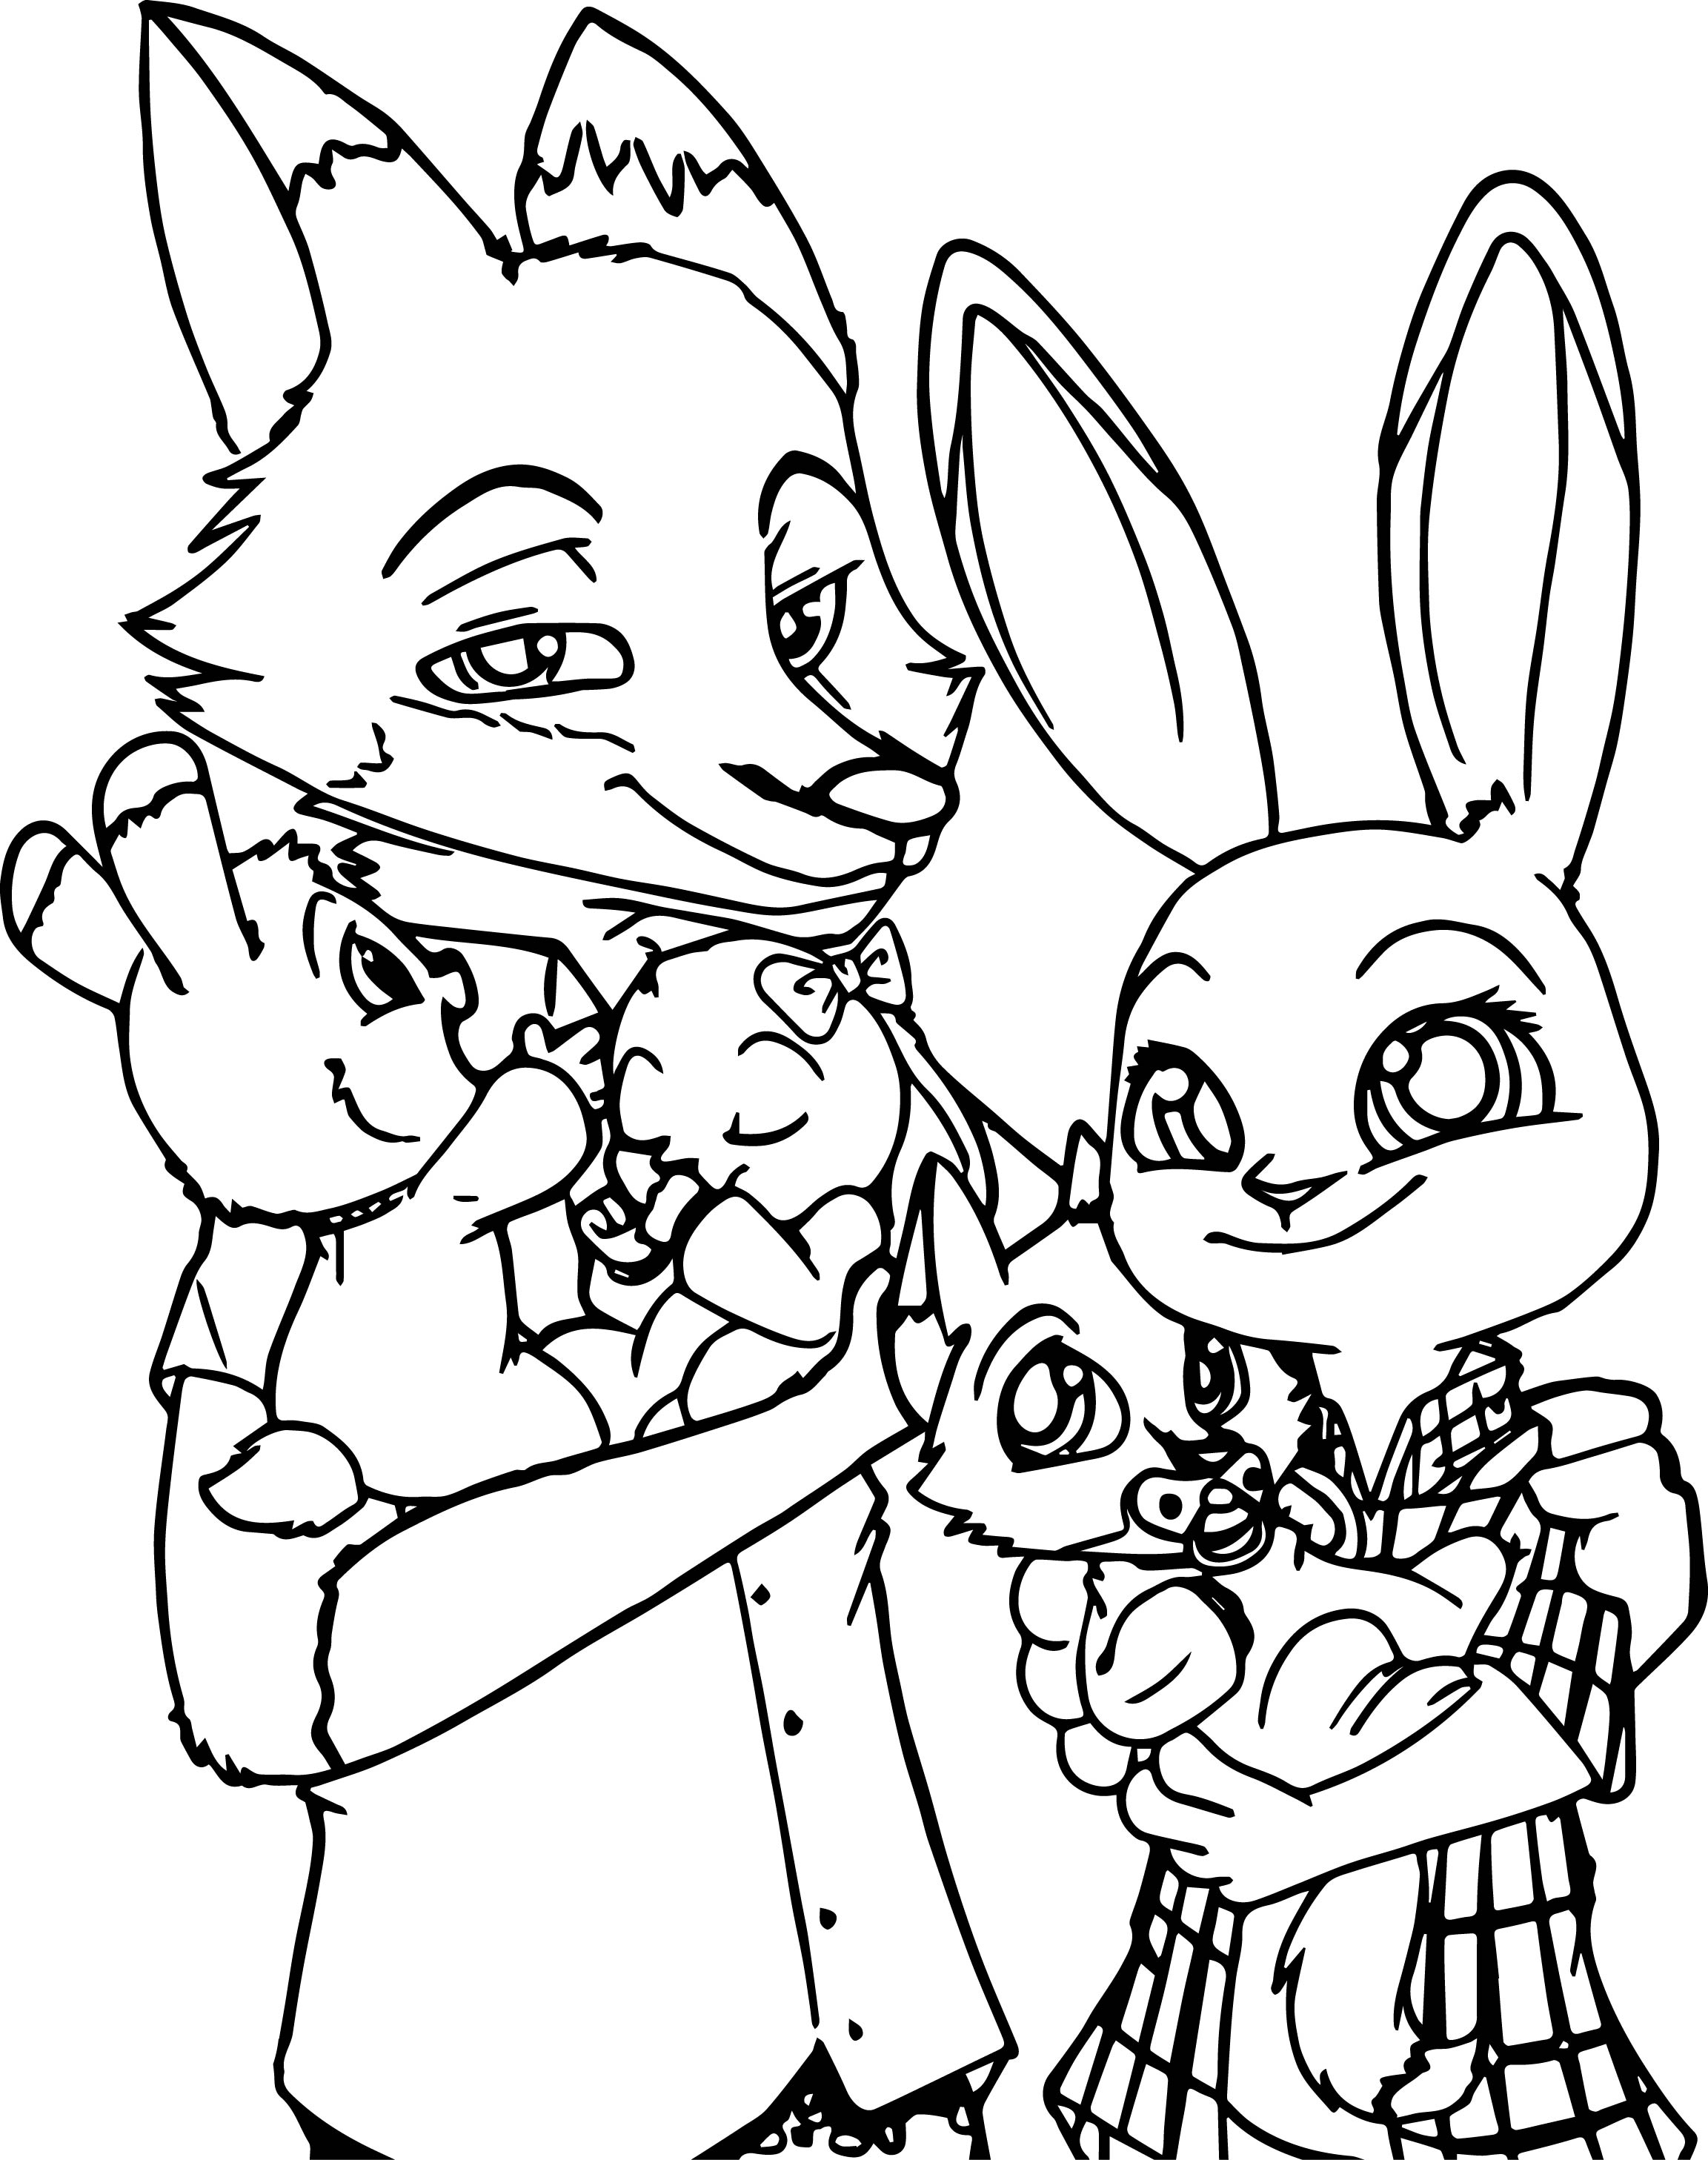 make your own coloring pages from photos - zootopia bunny and fox family coloring page